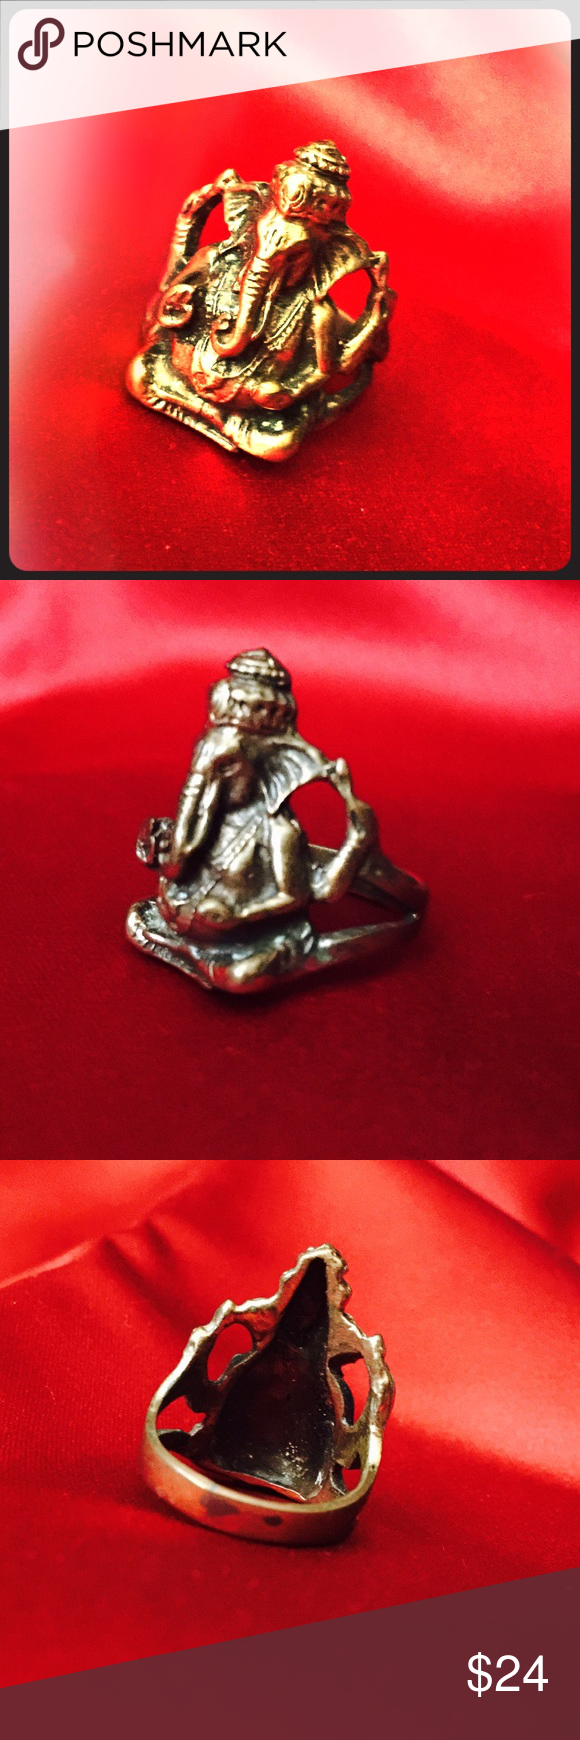 Lord Ganesh Ring Festival Meditation Ganesha Groovy Lord Ganesh Copper Ring Hindu Ring for Festival and Meditation Ganesha Ring Elephant Ring / ring for men / plus size ring- spiritual vibe and boho hippie chic Jewelry Rings